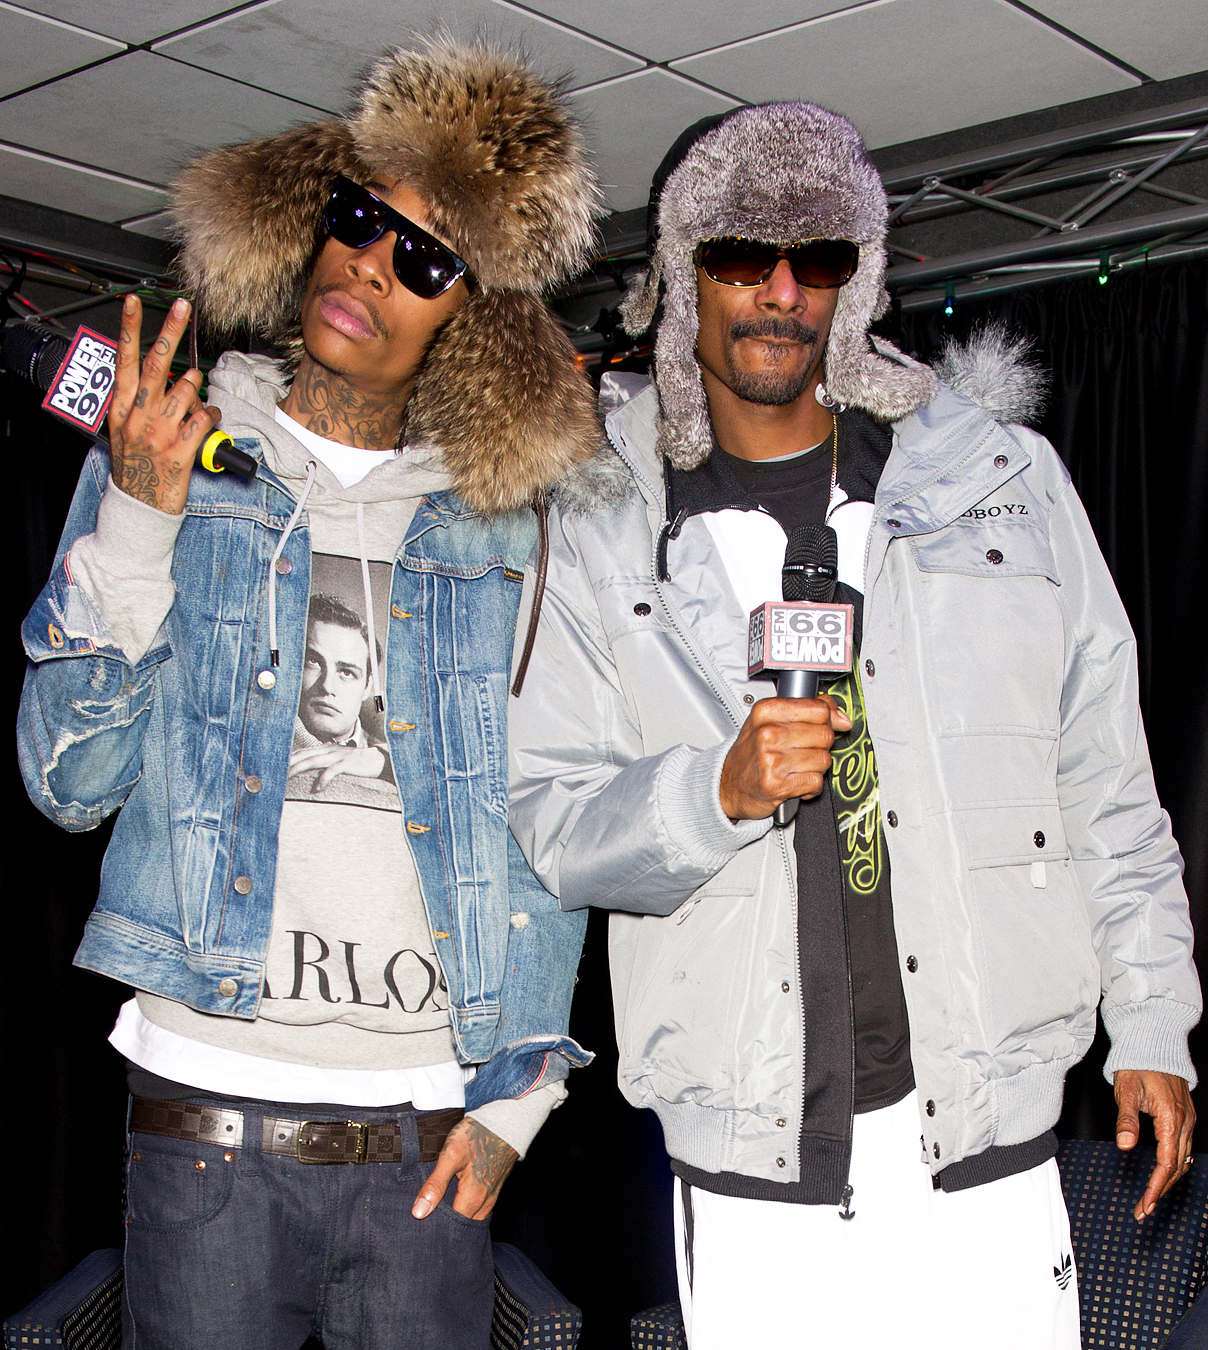 Snoop Dogg and Wiz Khalifa have been on tour together (Photo credit: Splash News)